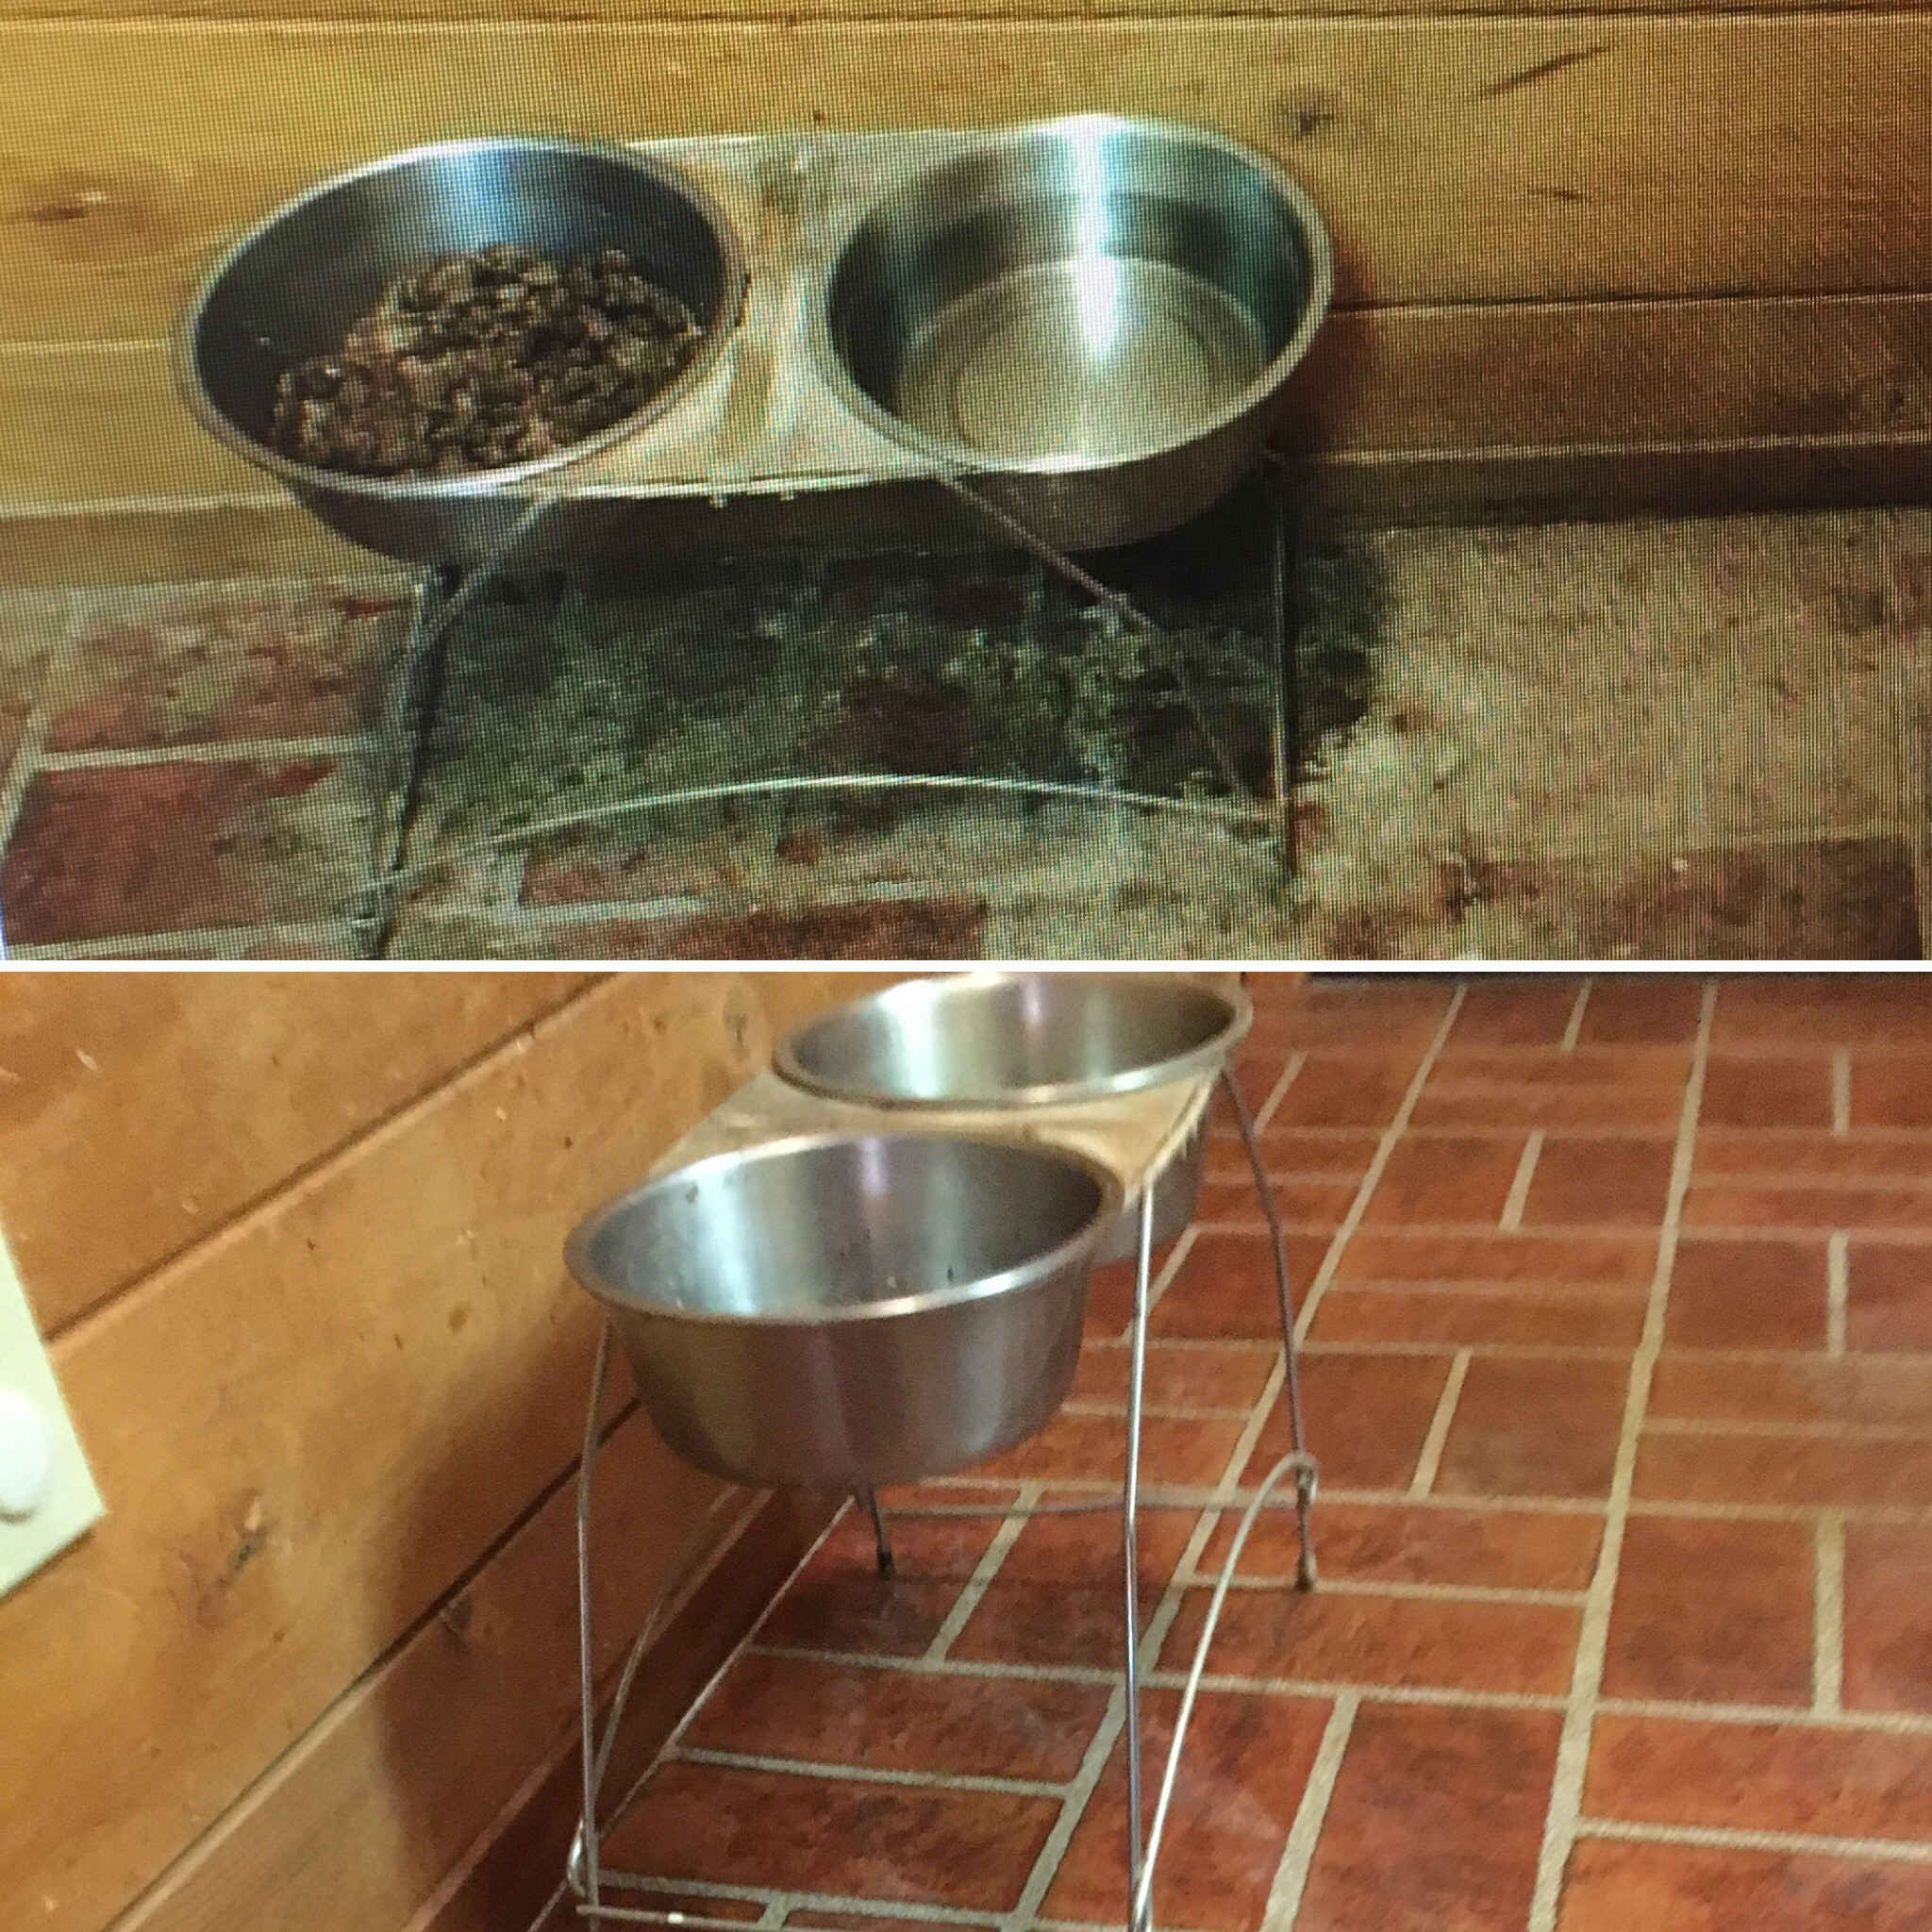 pet food area before and after cleaning